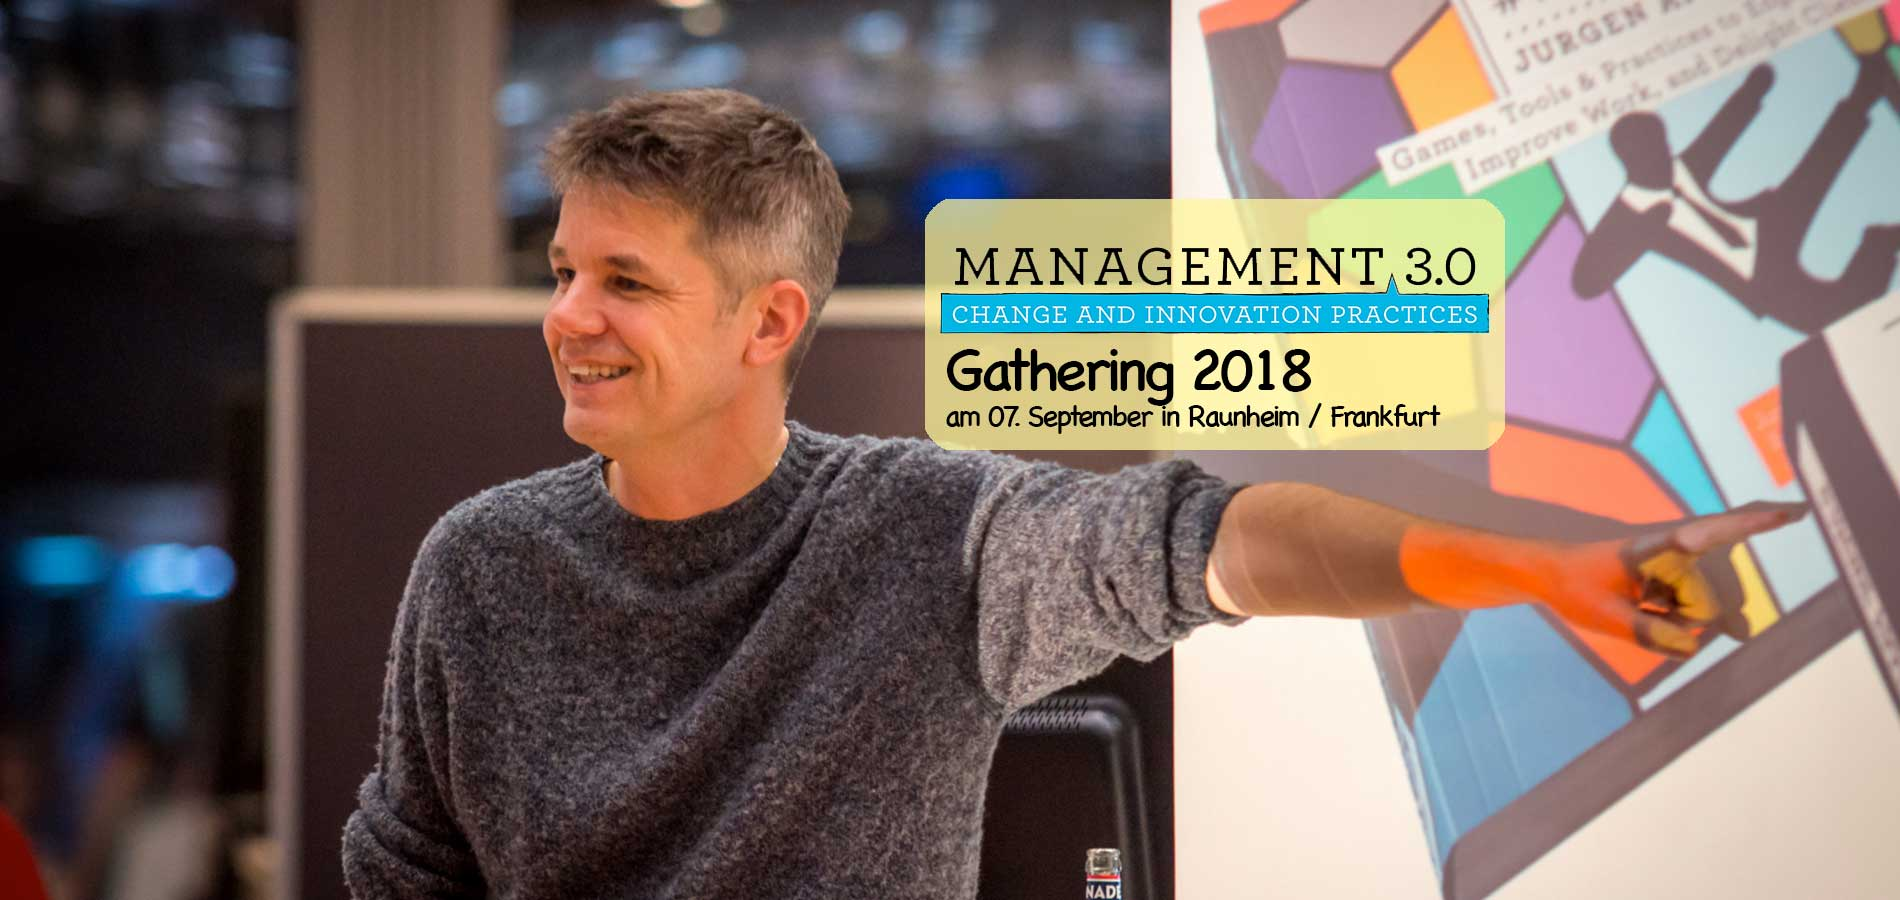 2. Management 3.0 Gathering 2018 - Deutschland